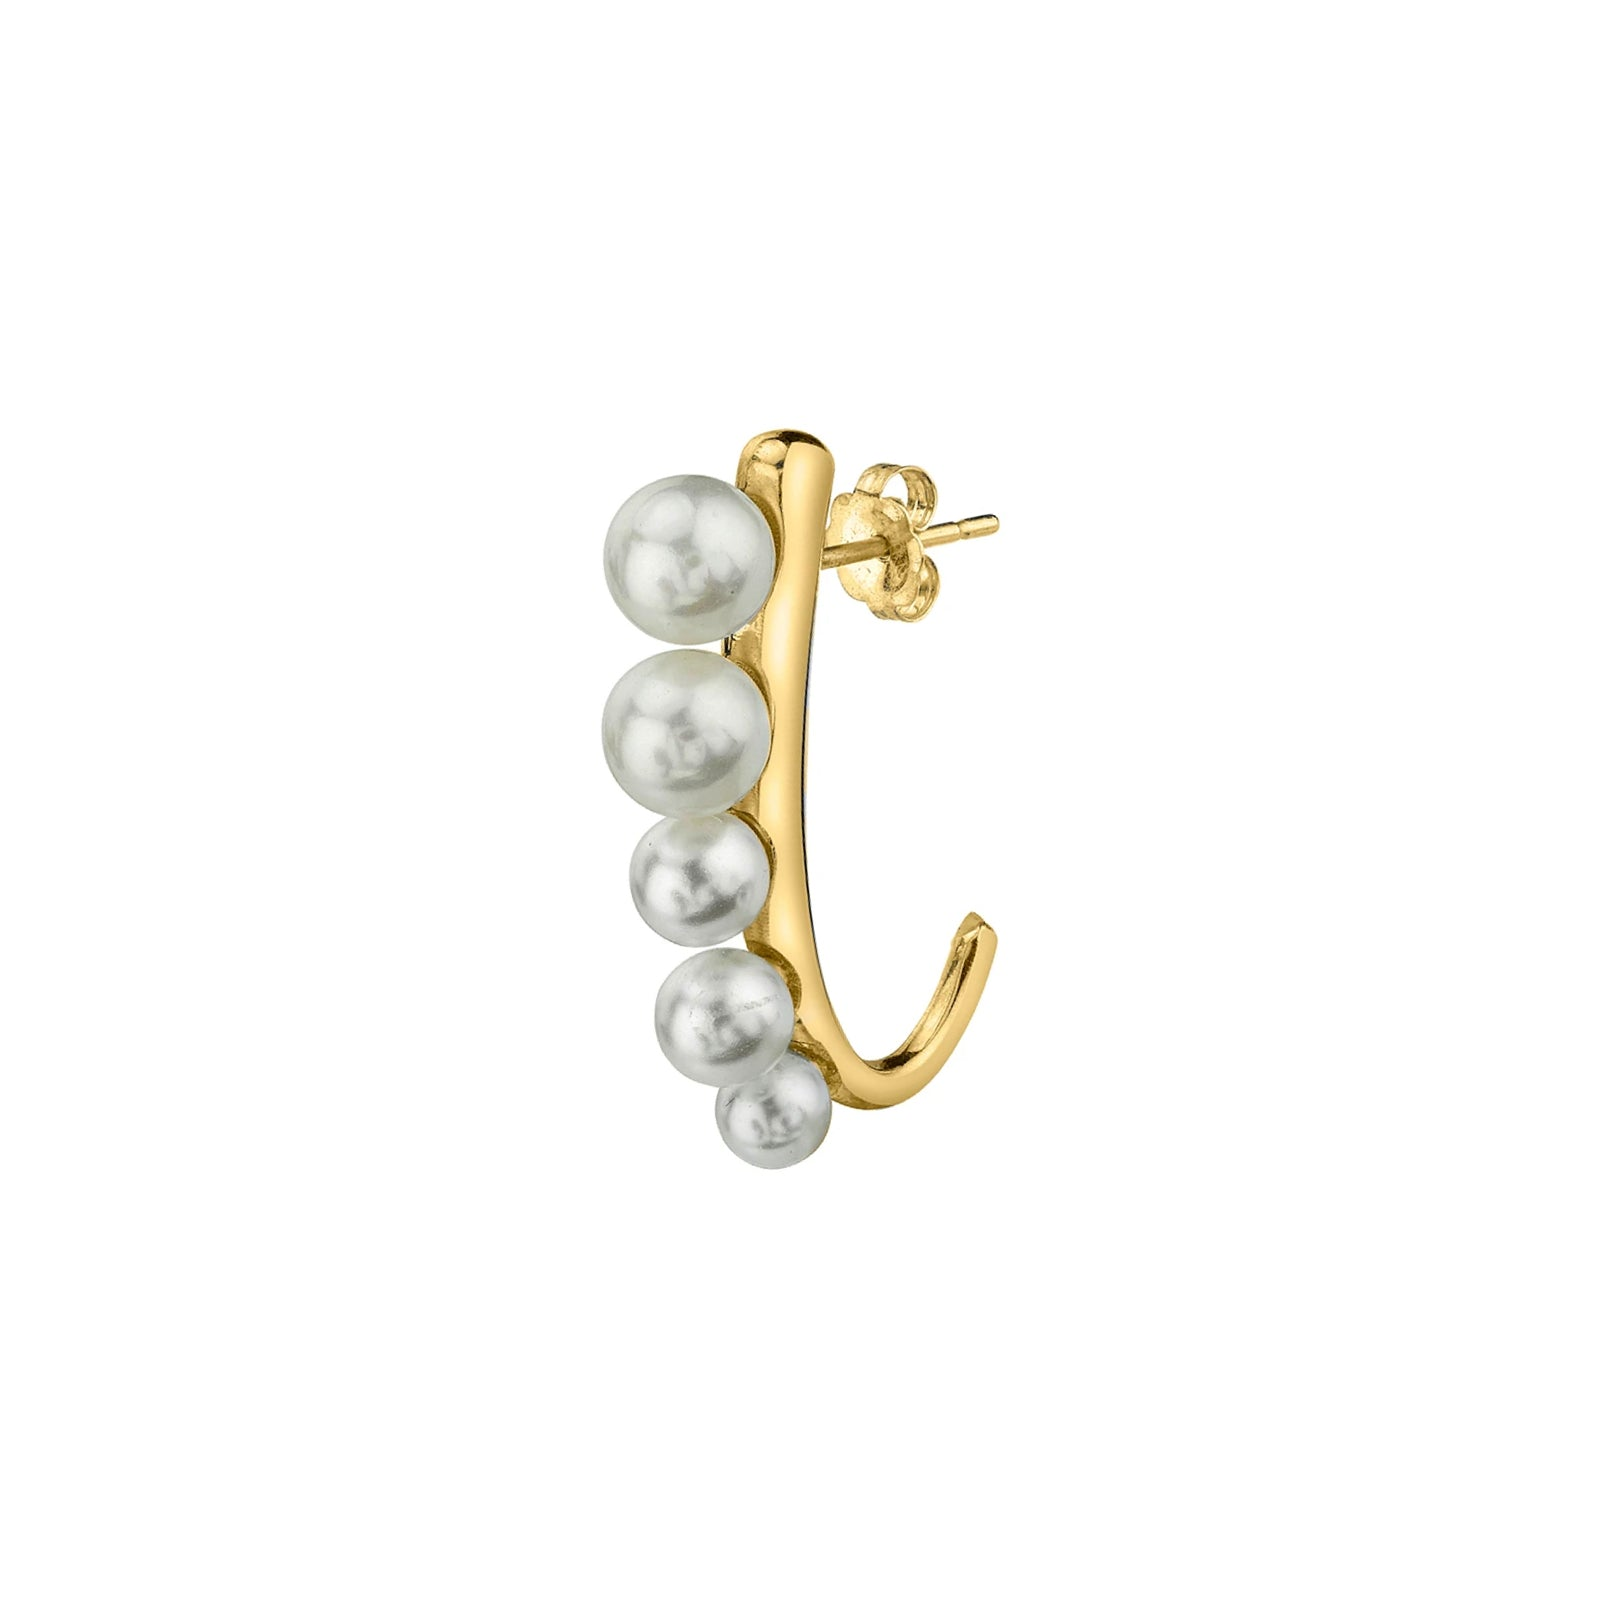 Gabriela Artigas & Company J Suspended Pearl Earring - Yellow Gold - Earrings - Broken English Jewelry